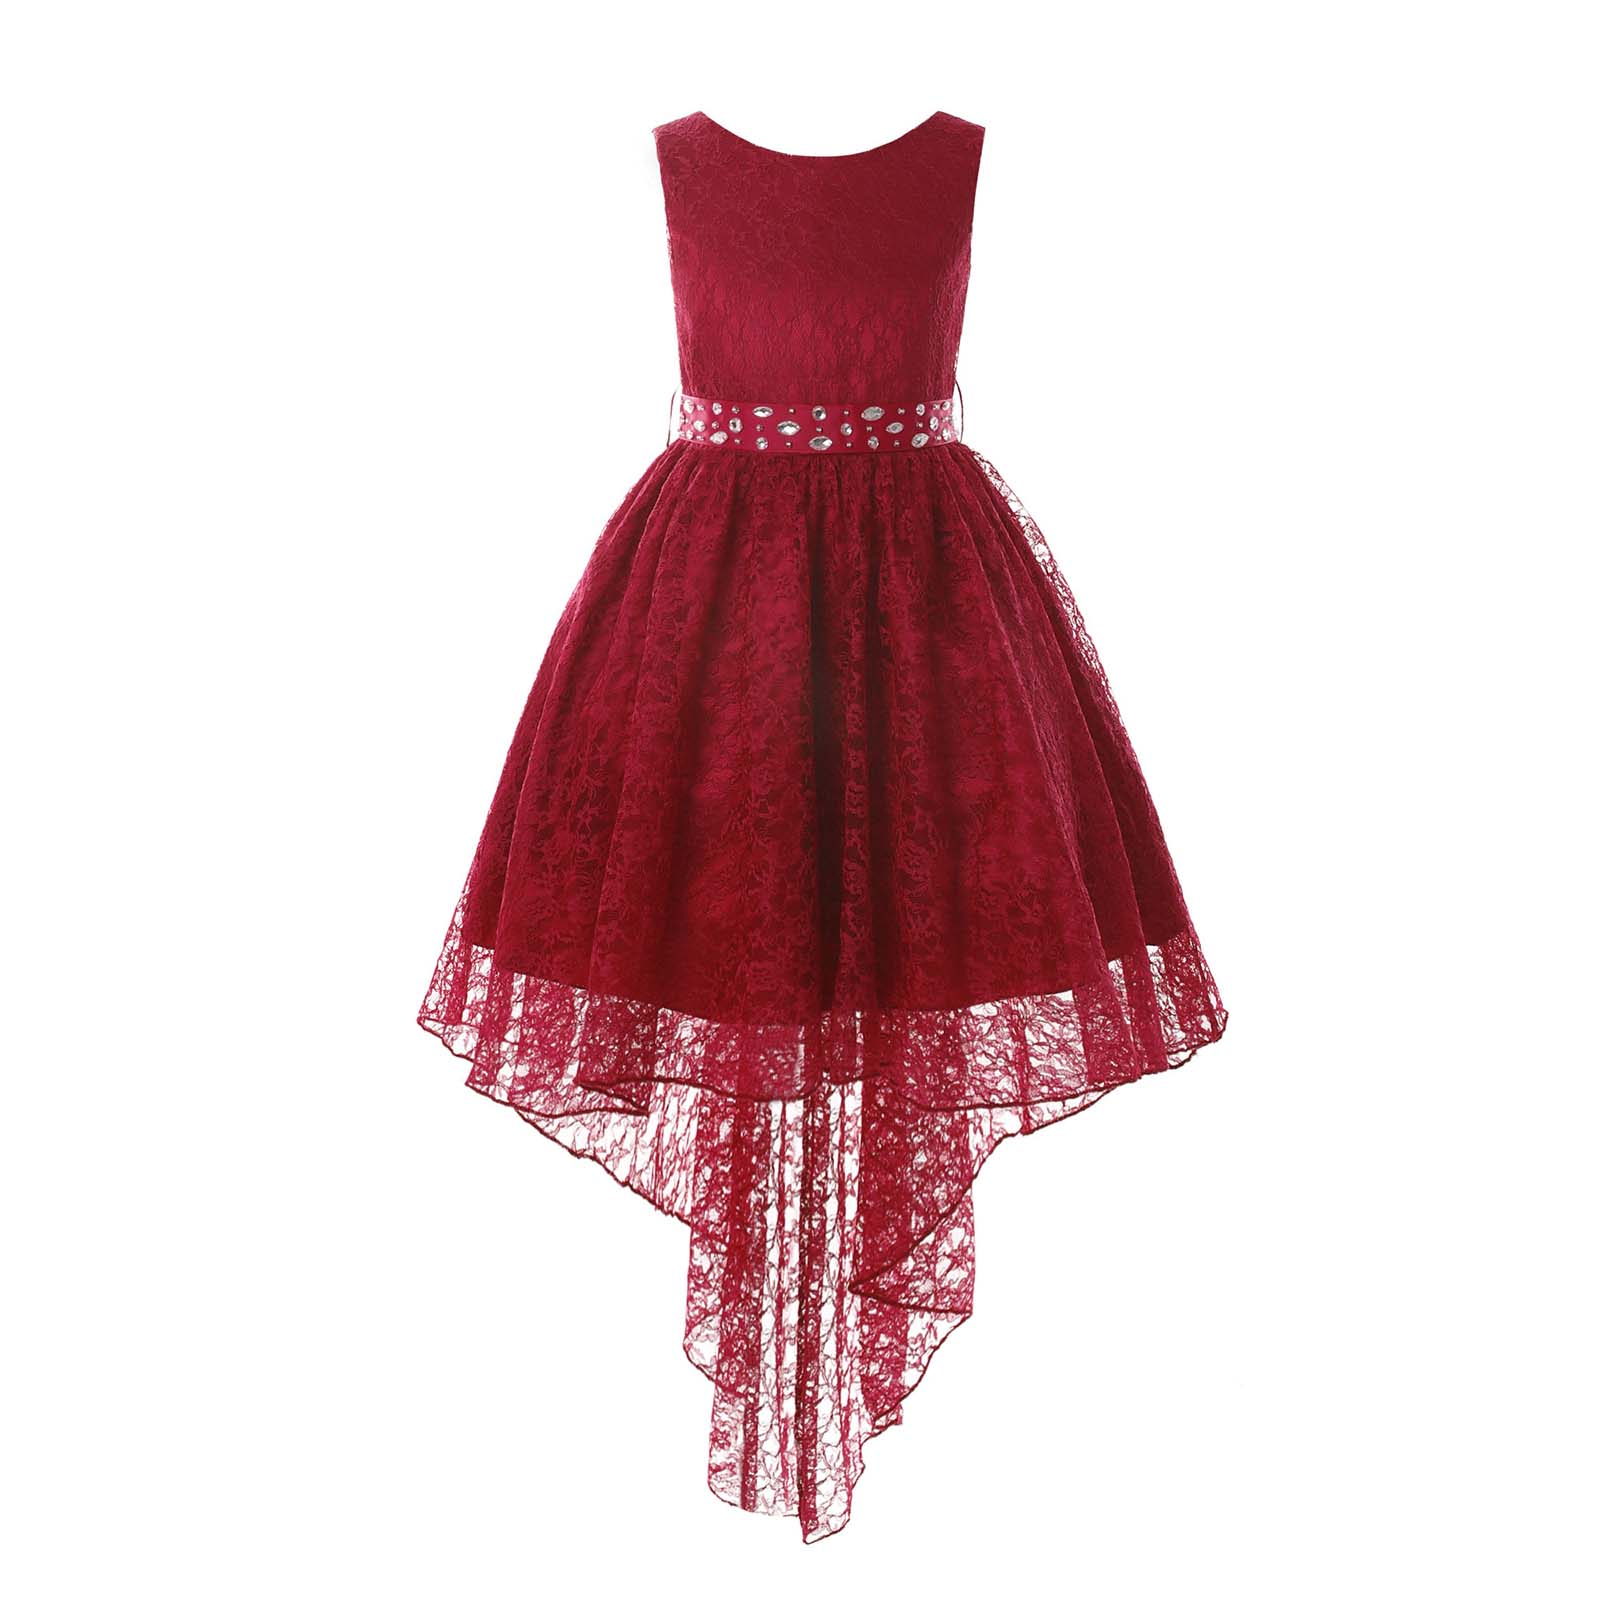 2021 Princess Girls Lace Pageant Dress Kids High Low Embroidered Dress Birthday Wedding Party Flower Girl Dresses Girl's Clothes